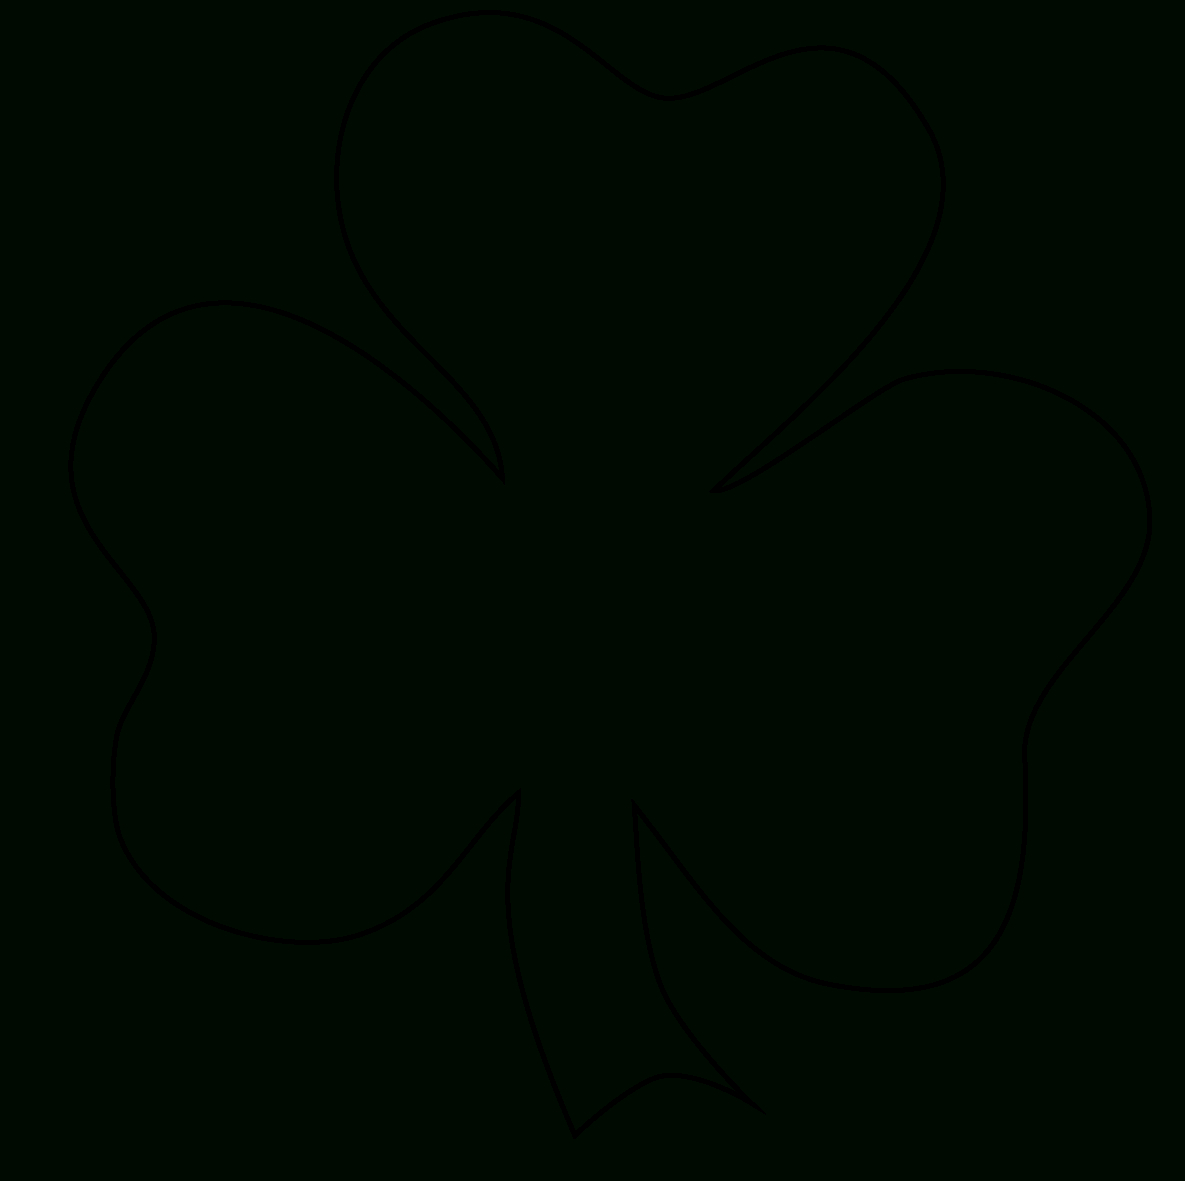 Free Four Leaf Clover Outline, Download Free Clip Art, Free Clip Art - Shamrock Template Free Printable